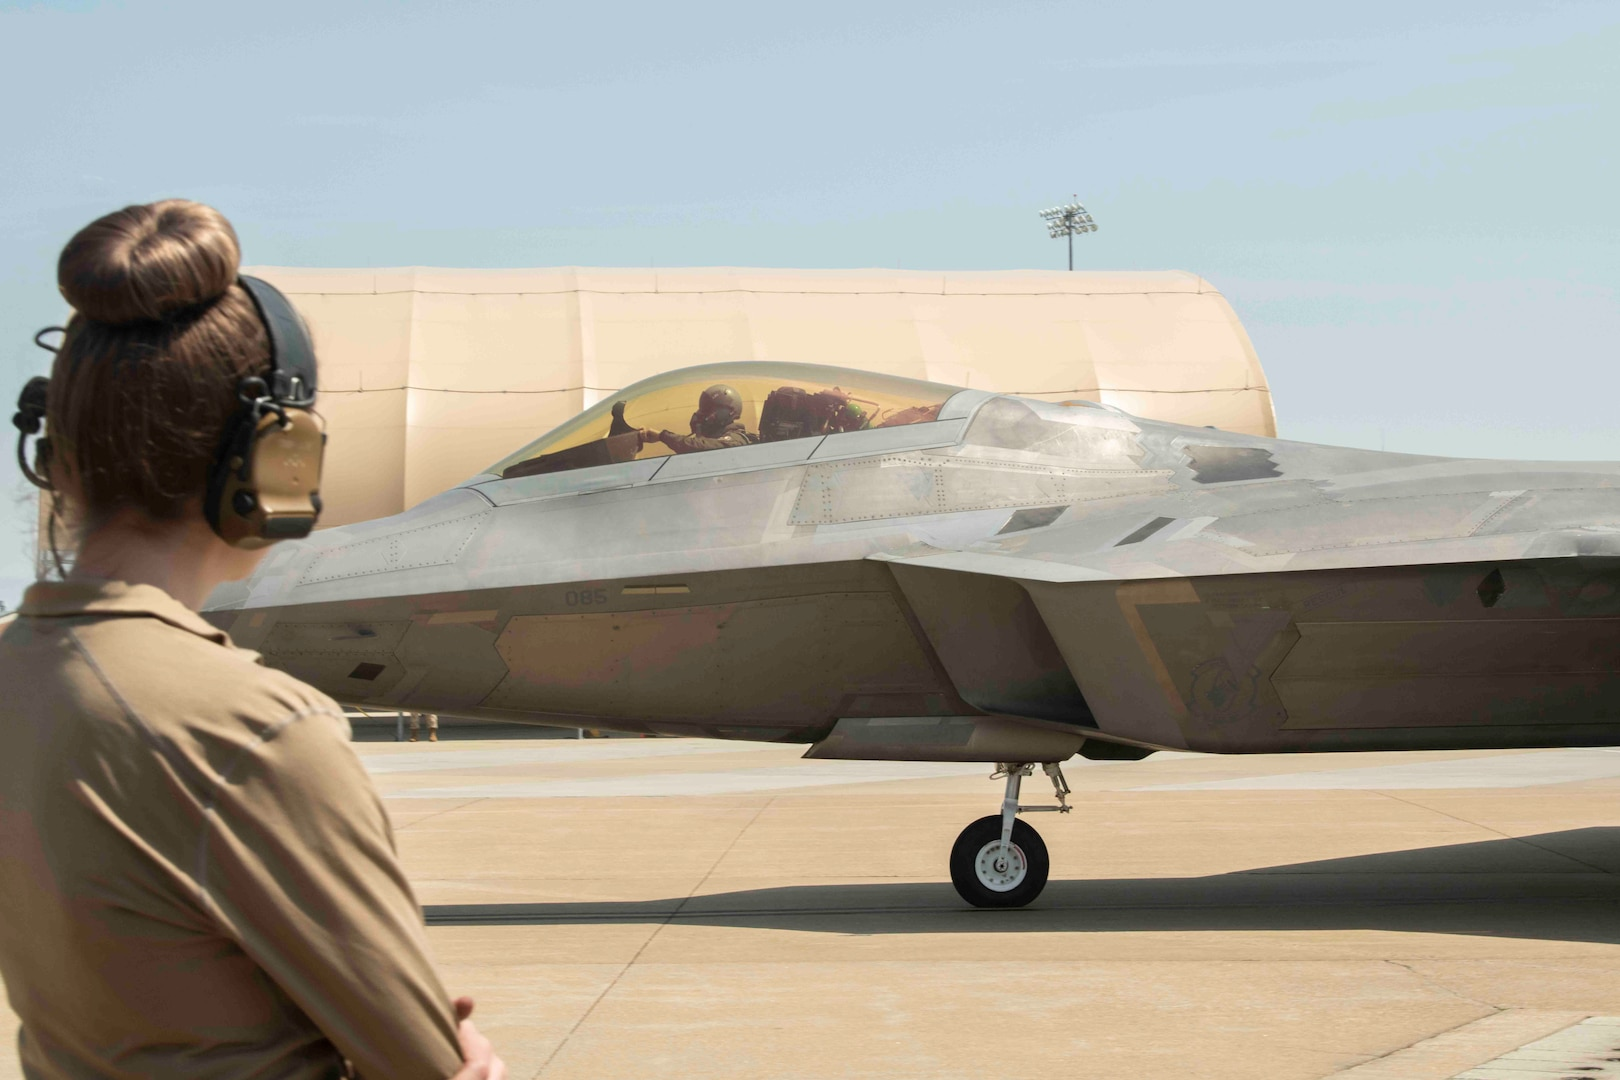 An airman looks on as F-22 tail #85 taxies towards its first flight in more than a year